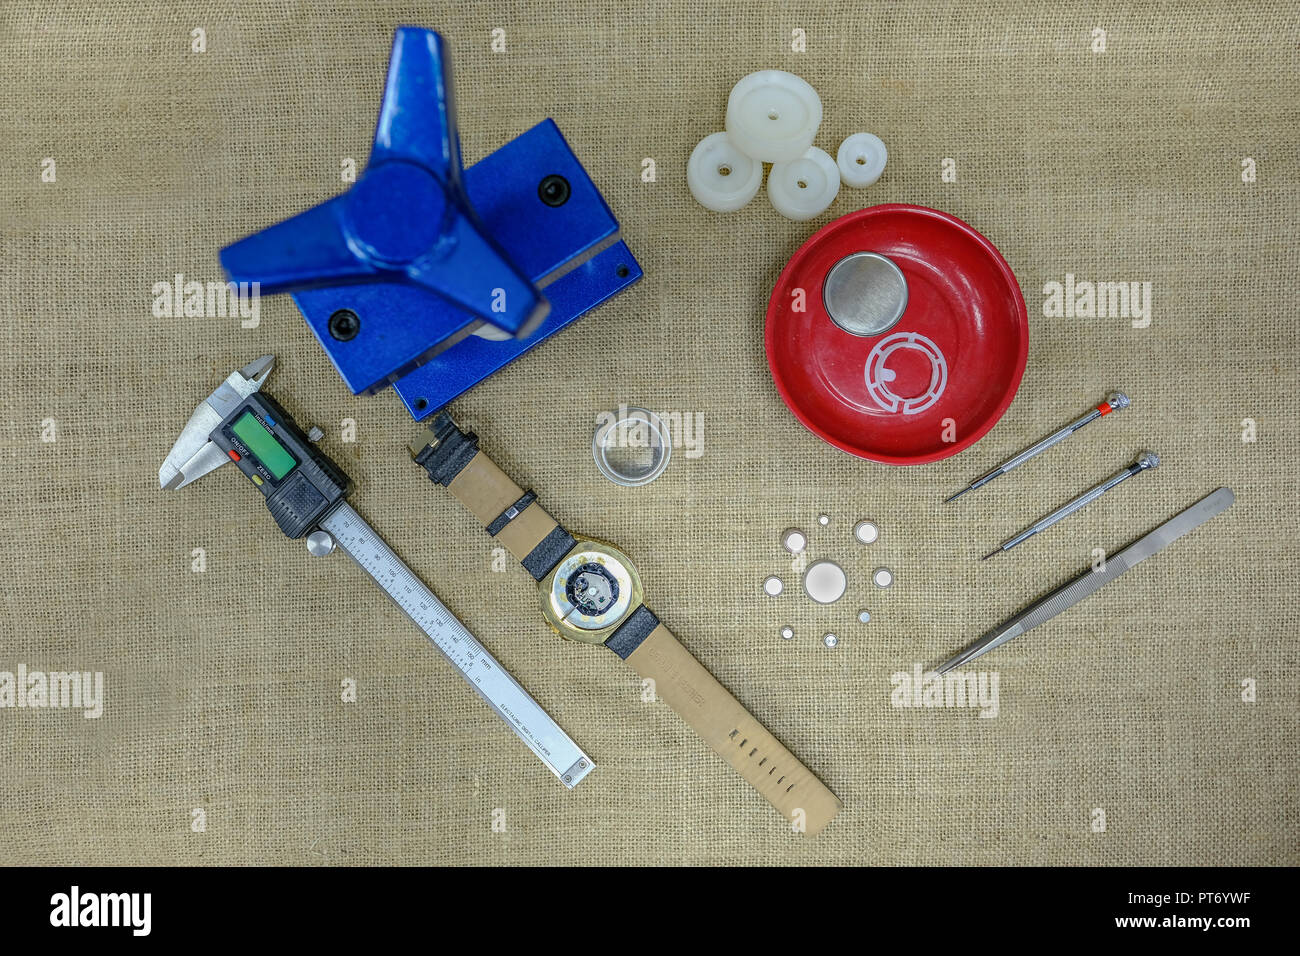 Top view of tools and equipment used to change a watch battery. - Stock Image